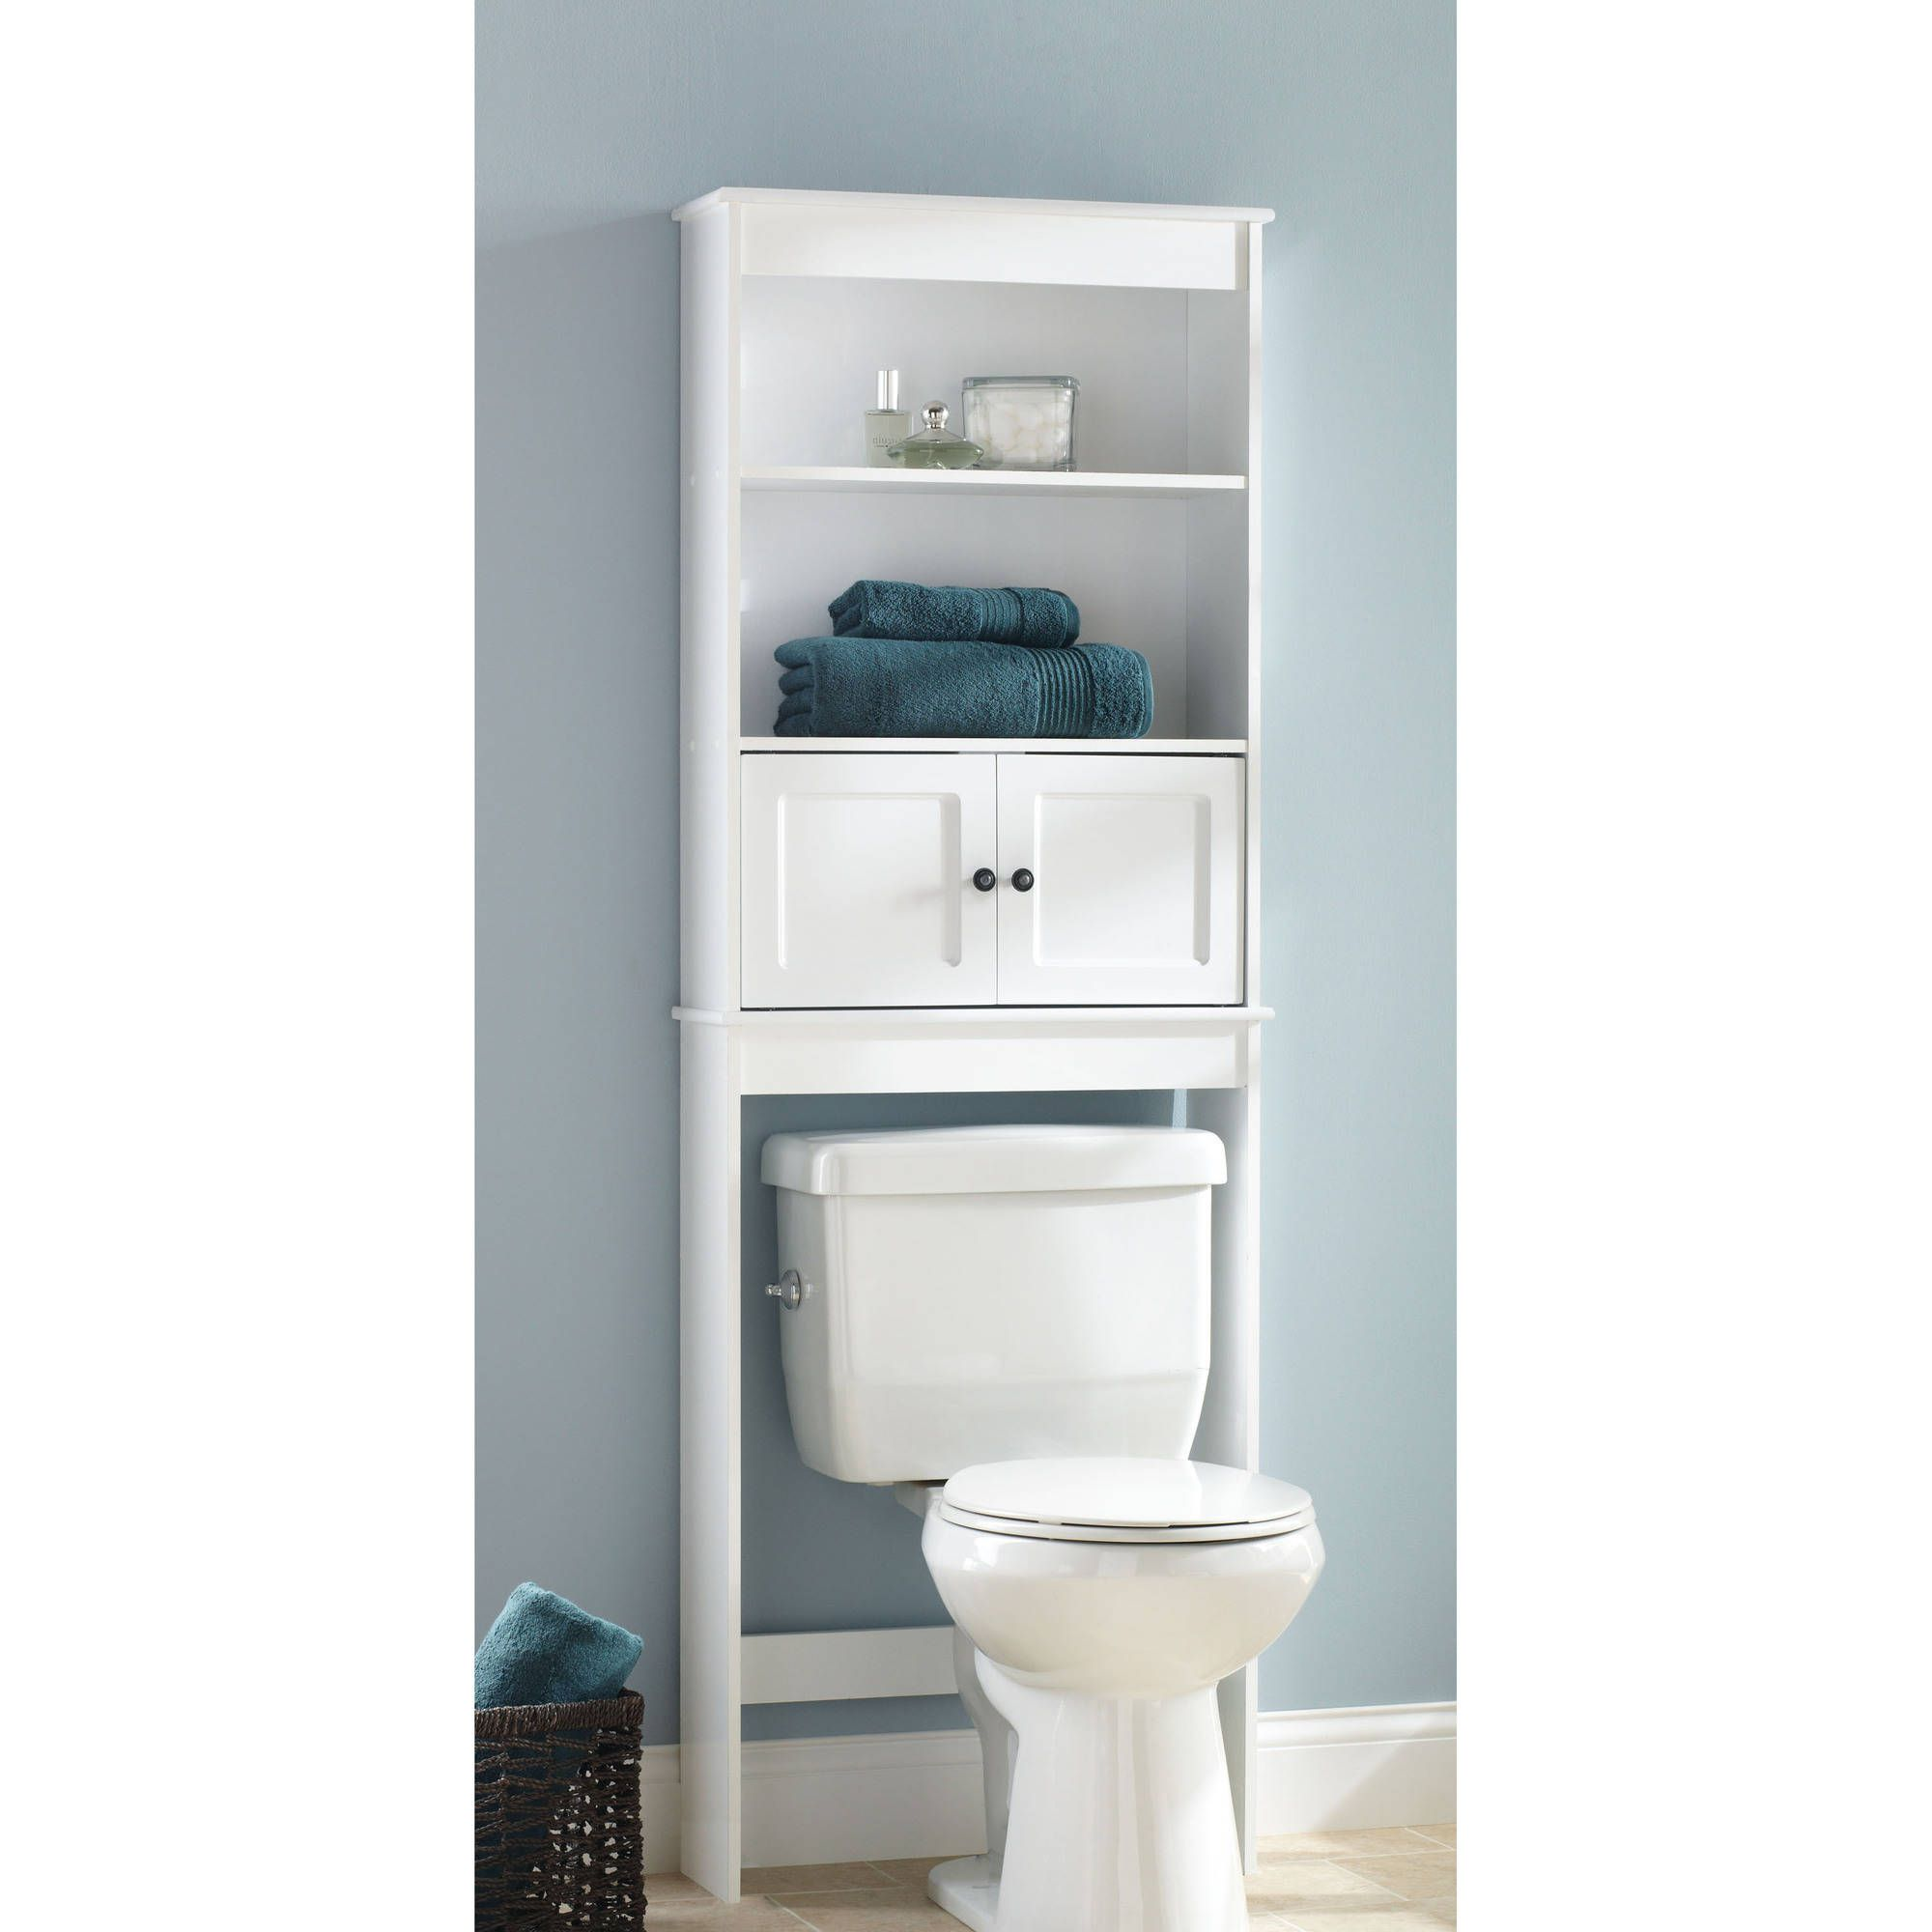 Home Bathroom Organisation Small Bathroom Shelves Small